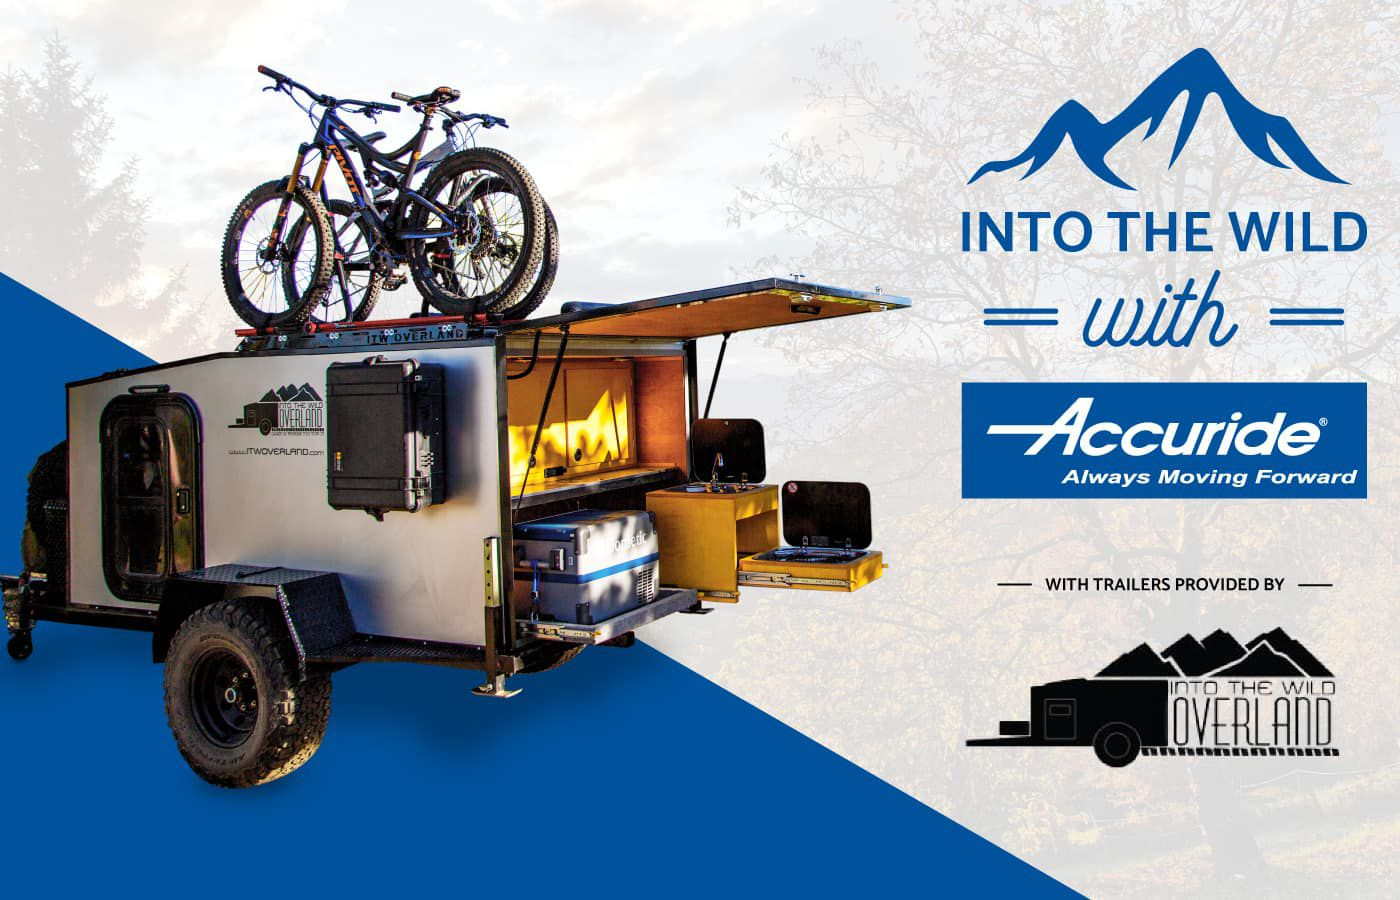 Accuride drawer slides in campers, trailers improving micro living spaces